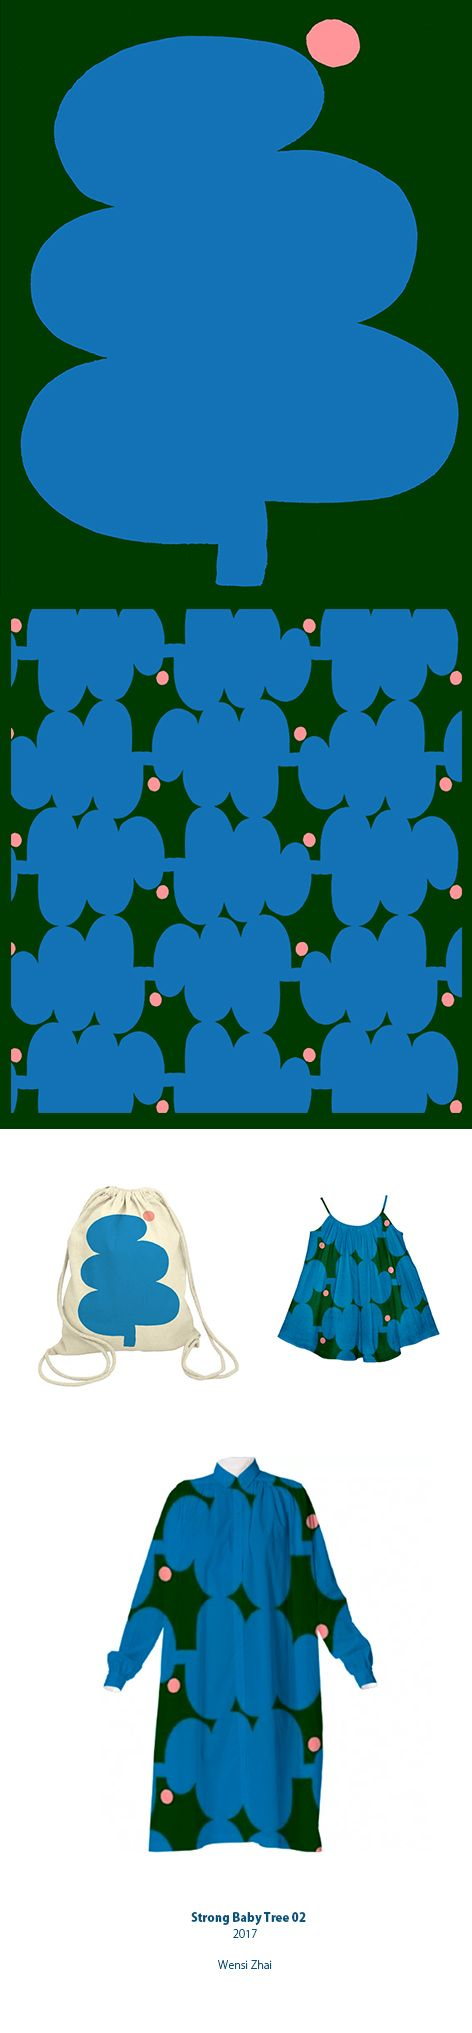 Wensi Zhai _ Strong Baby Tree 2 _ Illustration and Pattern design